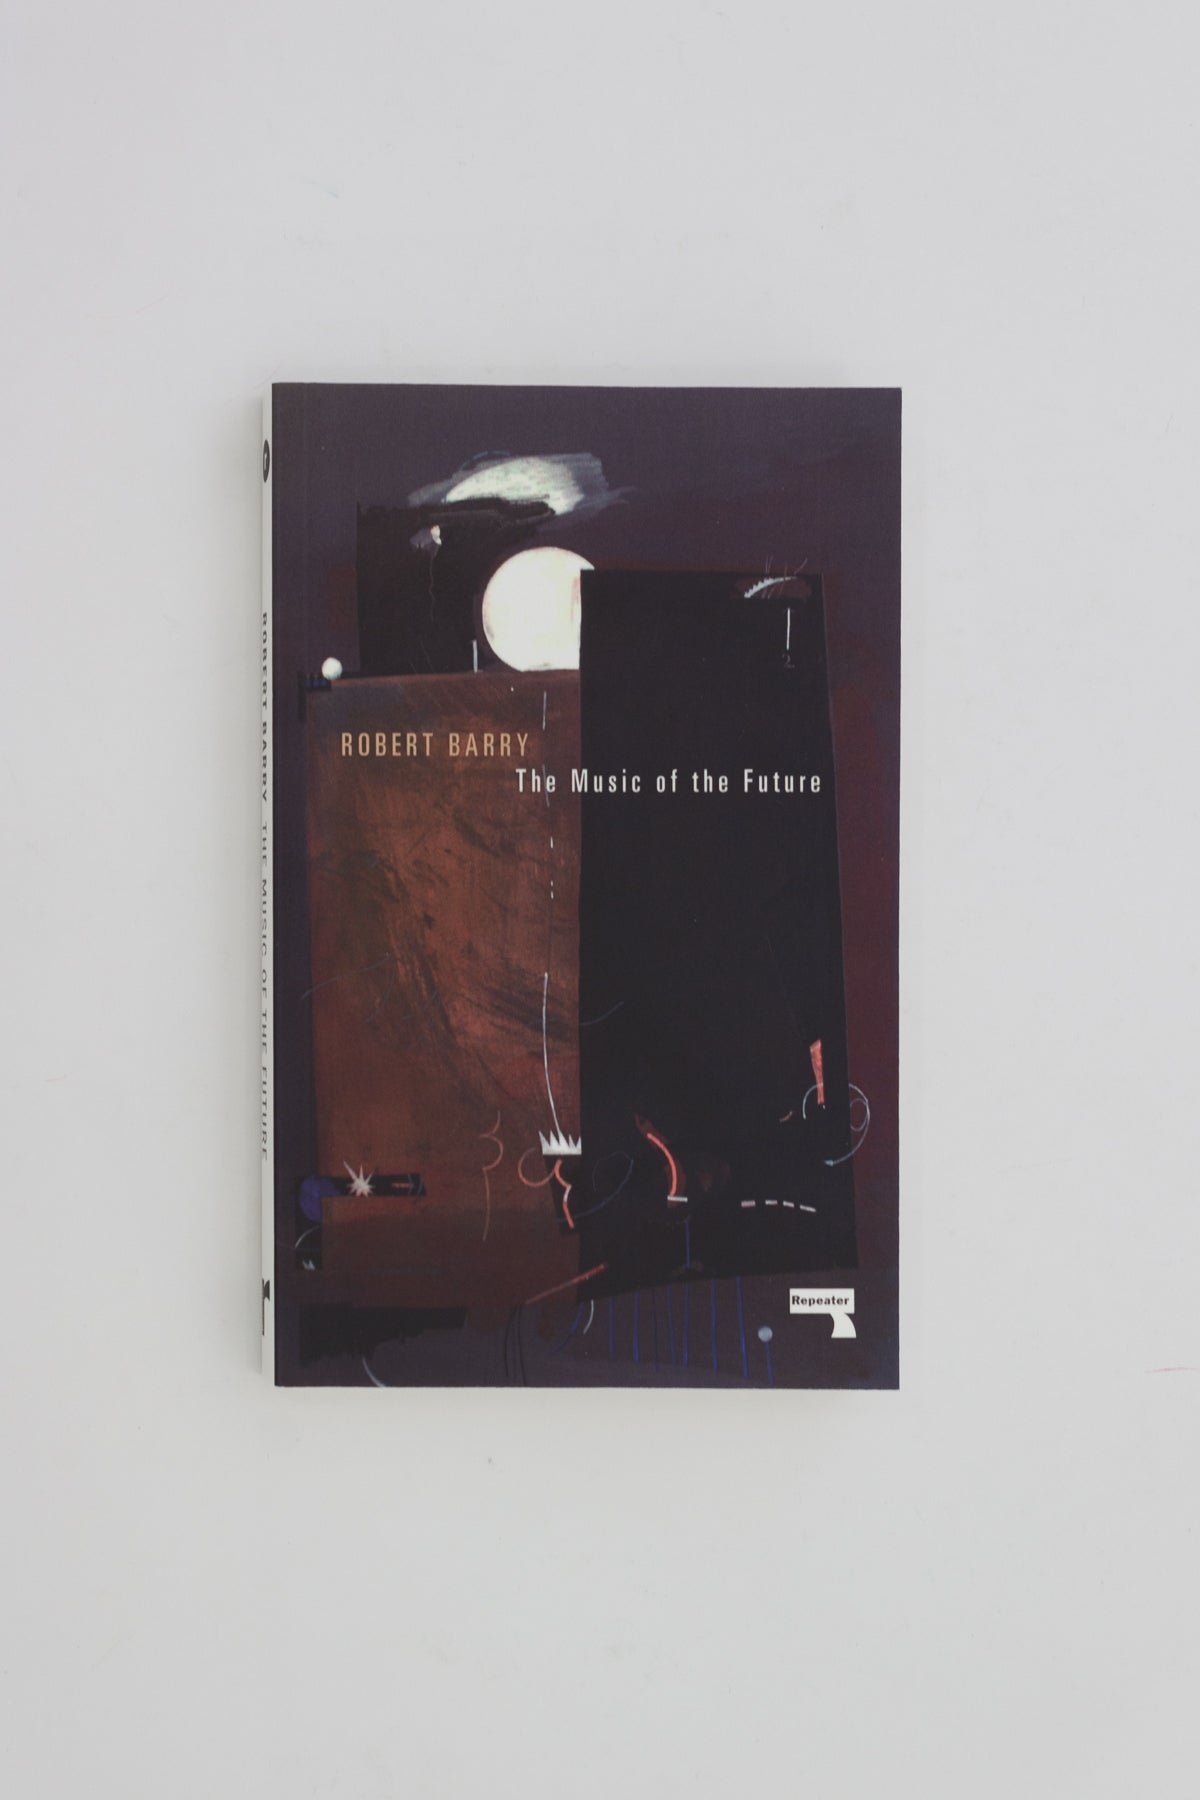 The Music of the Future - Robert Barry